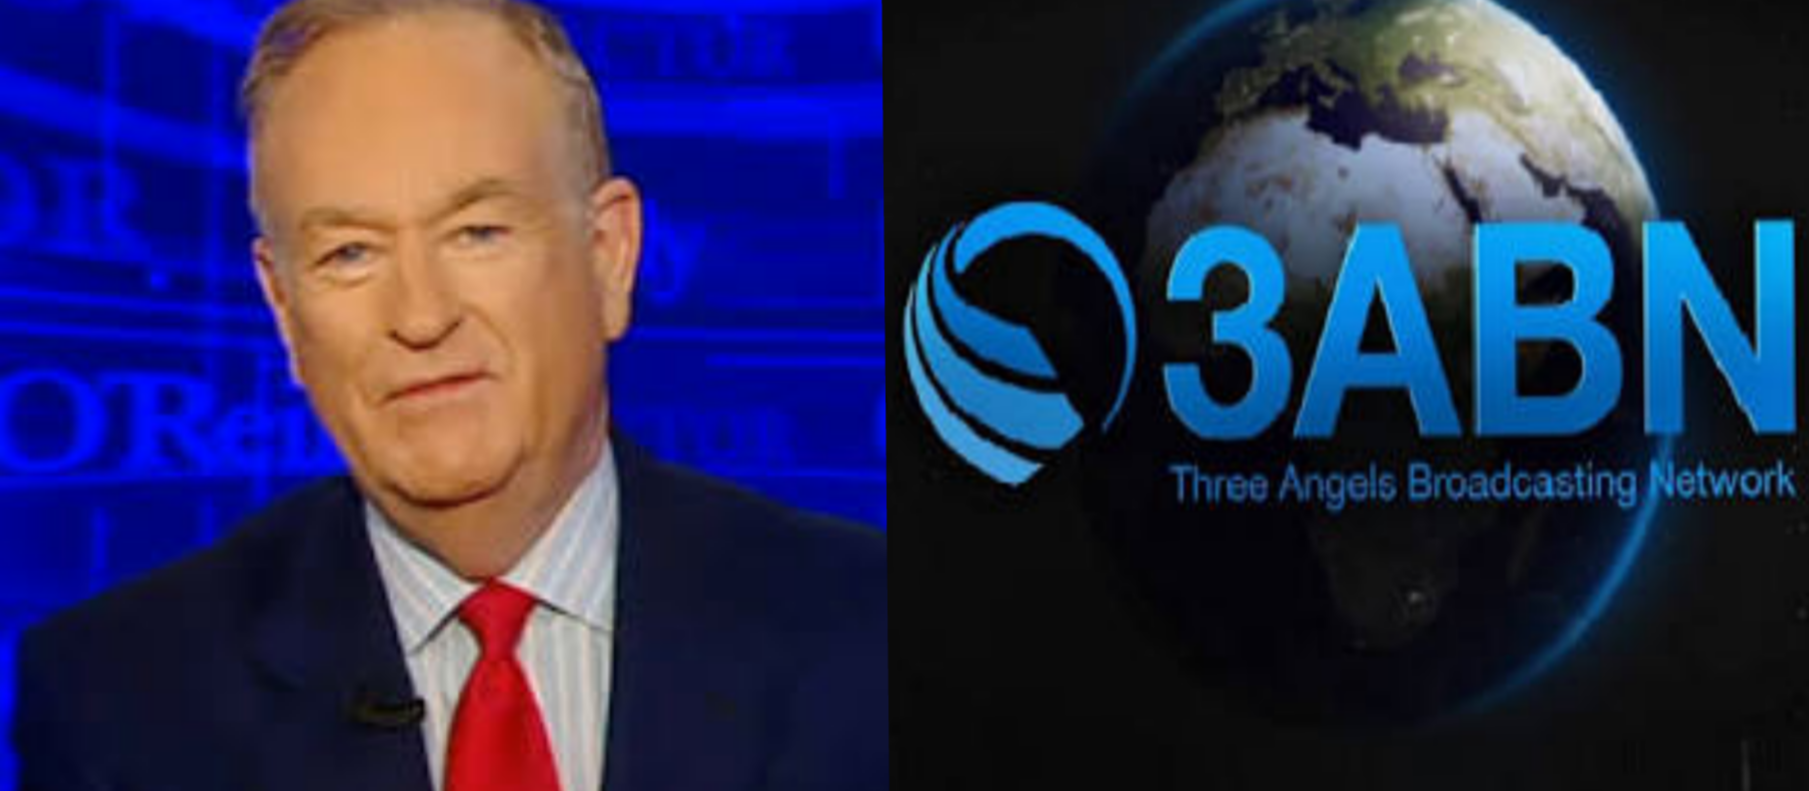 3ABN to feature on Fox News after Bill O'Reilly departure